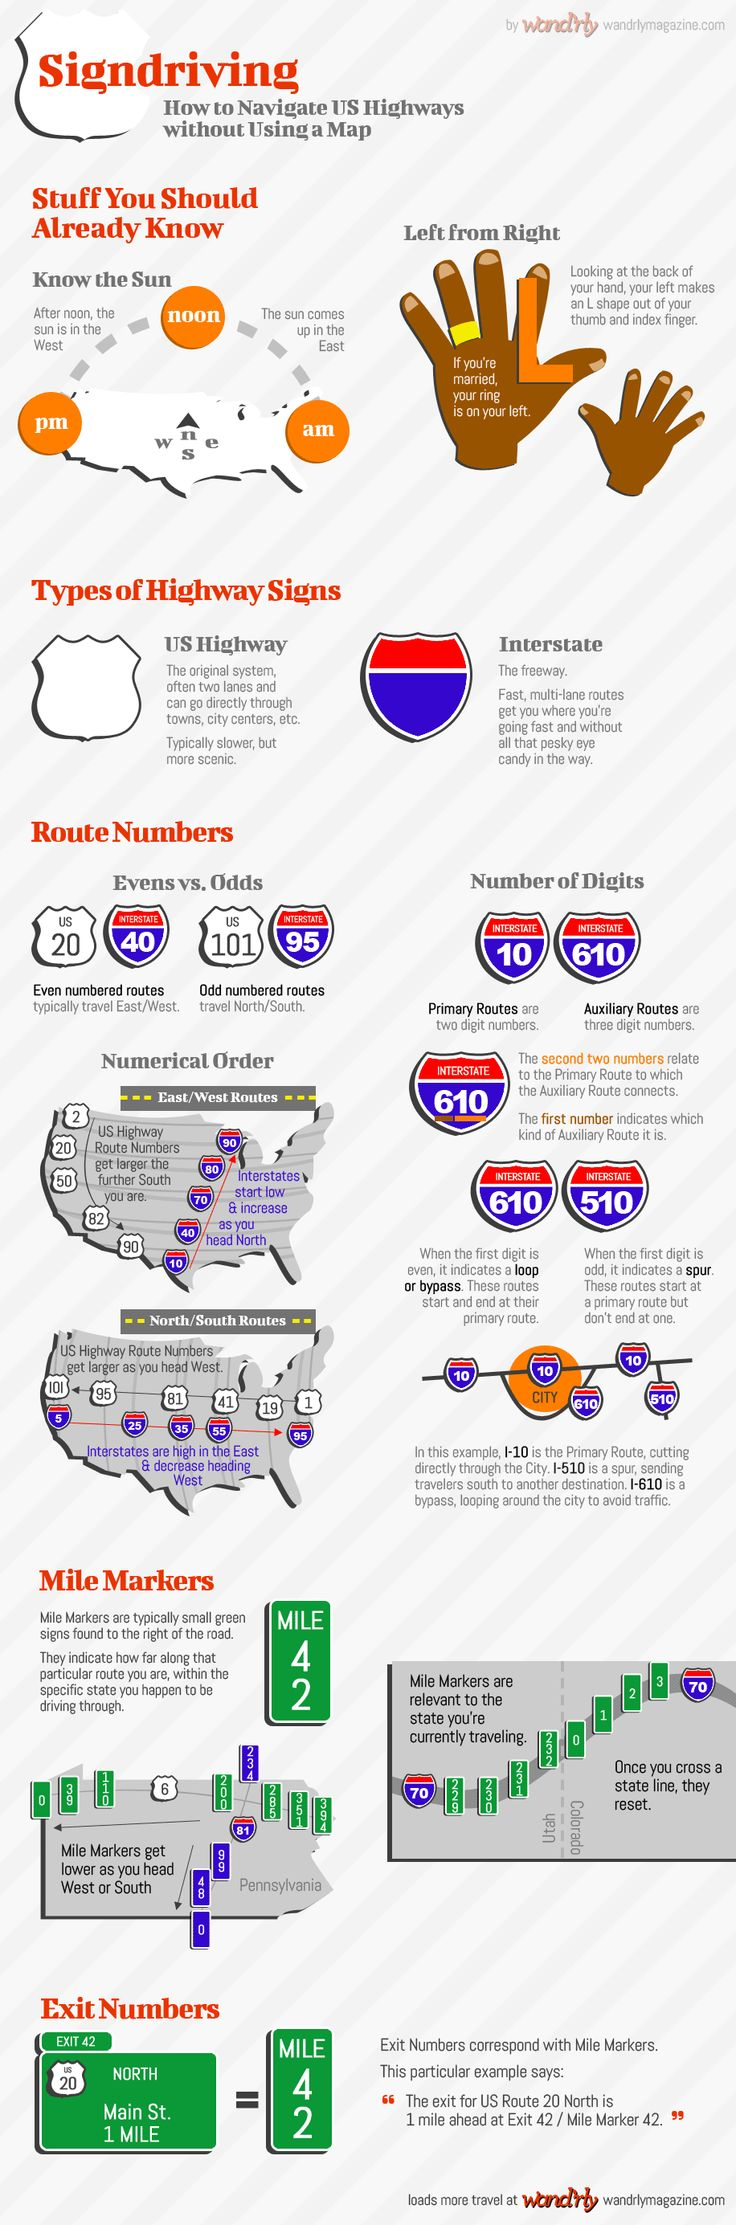 Best Highways And Byways Images On Pinterest - Us highway travel map